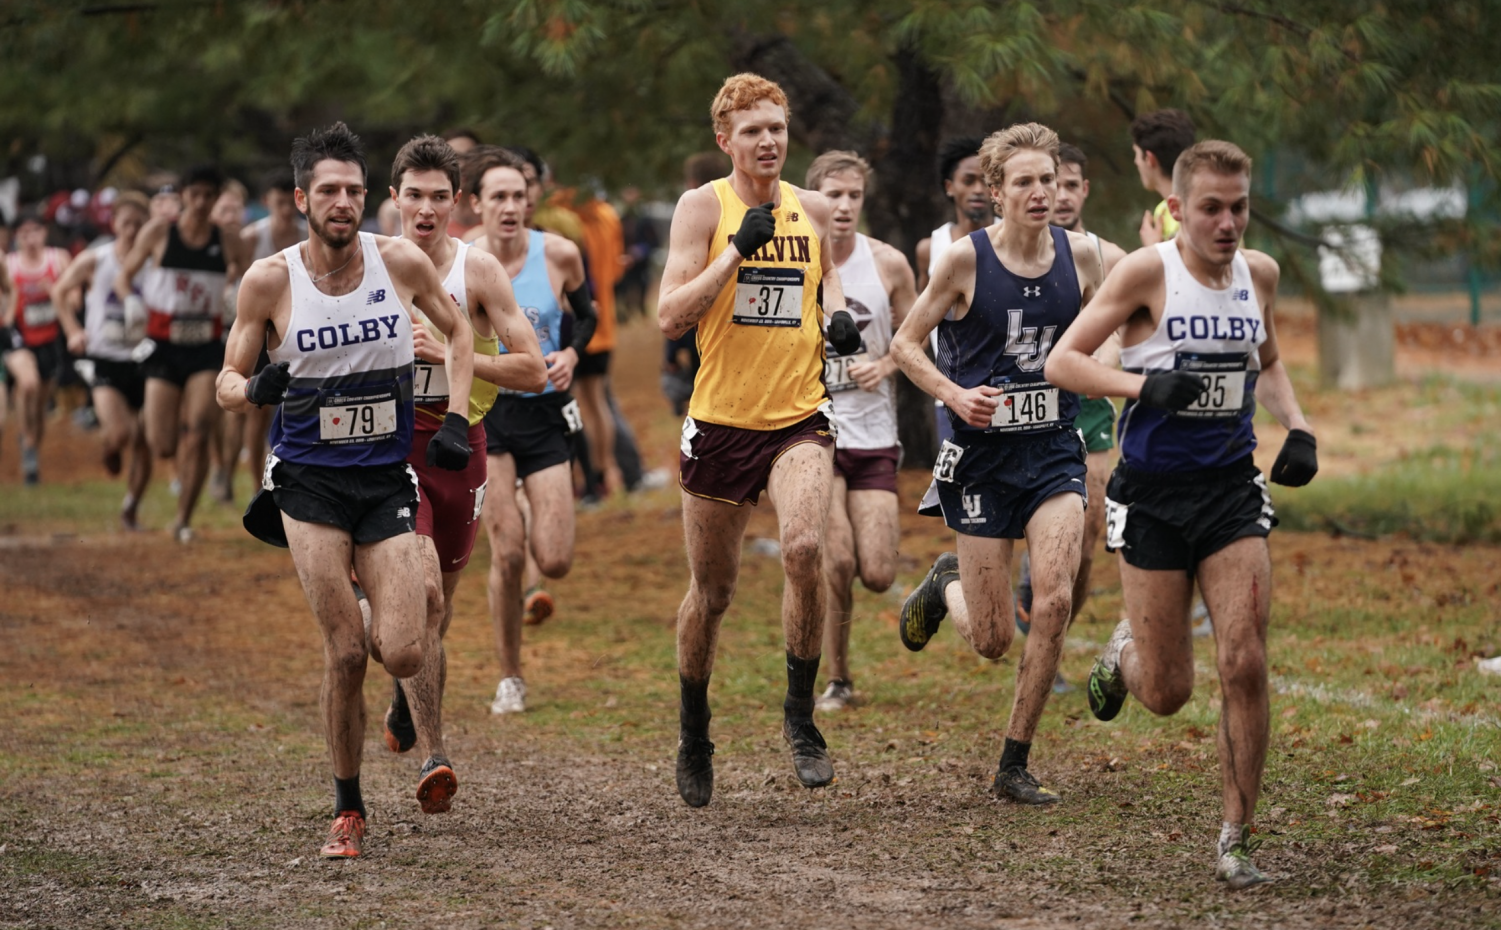 Pictured, Tyler Johnson running the 8k at NCAA DIII Cross Country Championships